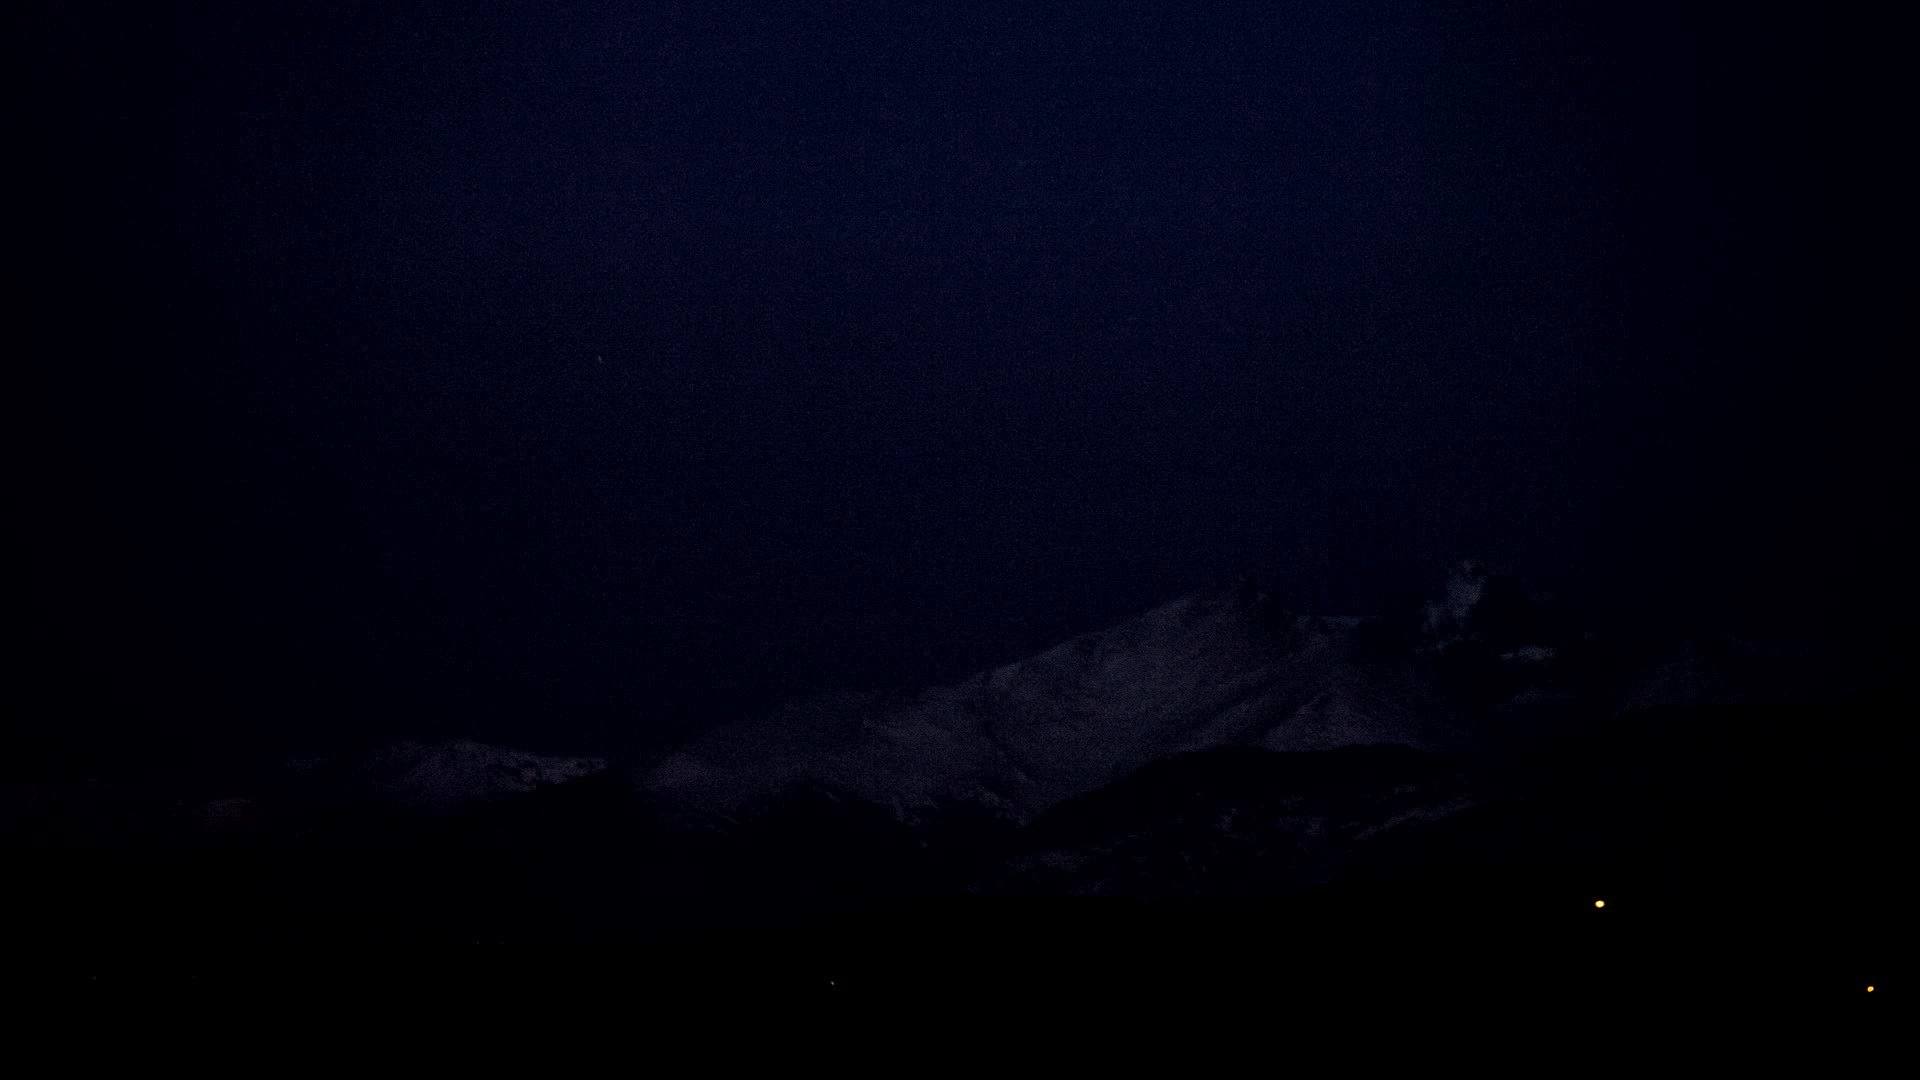 timelapsegifs, Eclipsed moon setting behind Long's Peak [1 hour] GIFs